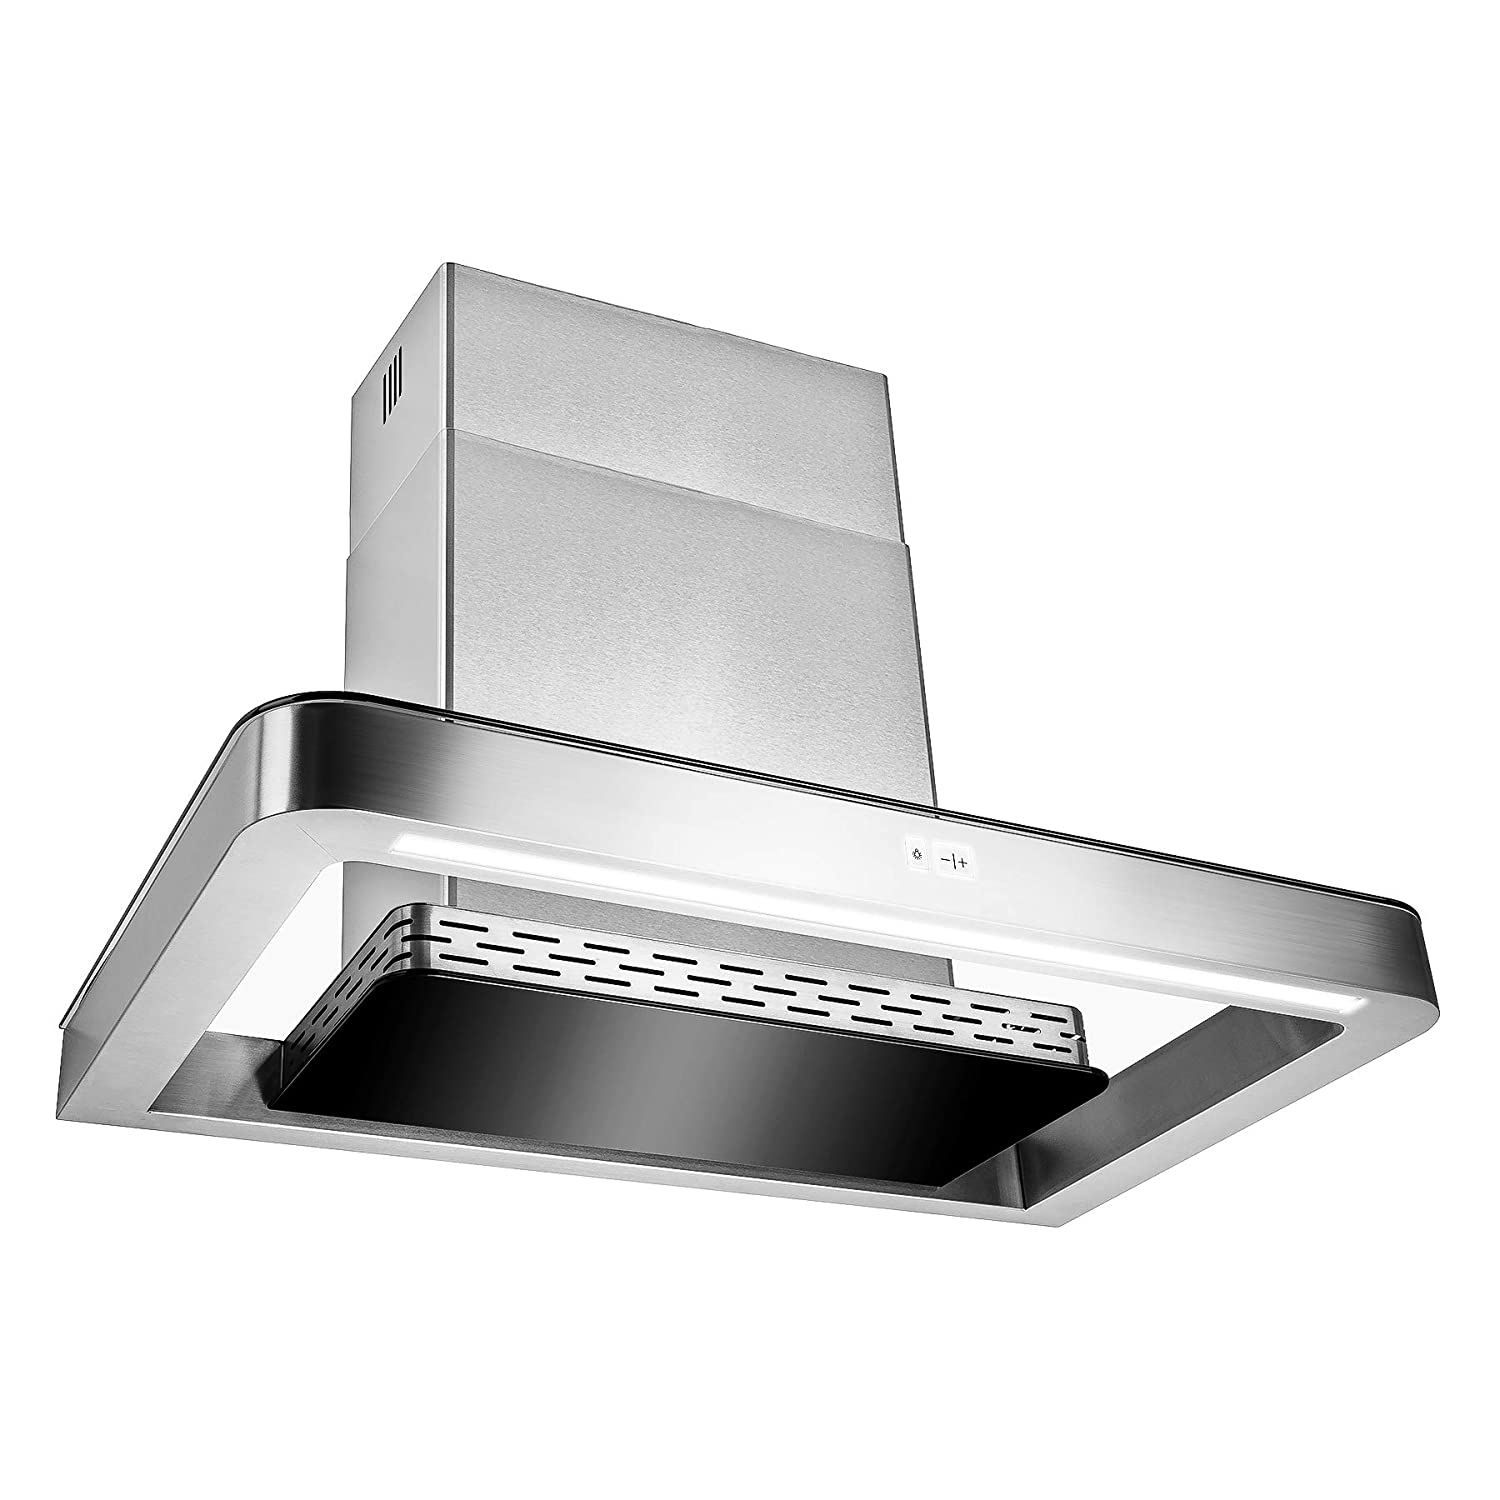 AKDY 30' Wall Mount Stainless Steel Push Panel Kitchen Range Hood Cooking Fan AK-RH0015